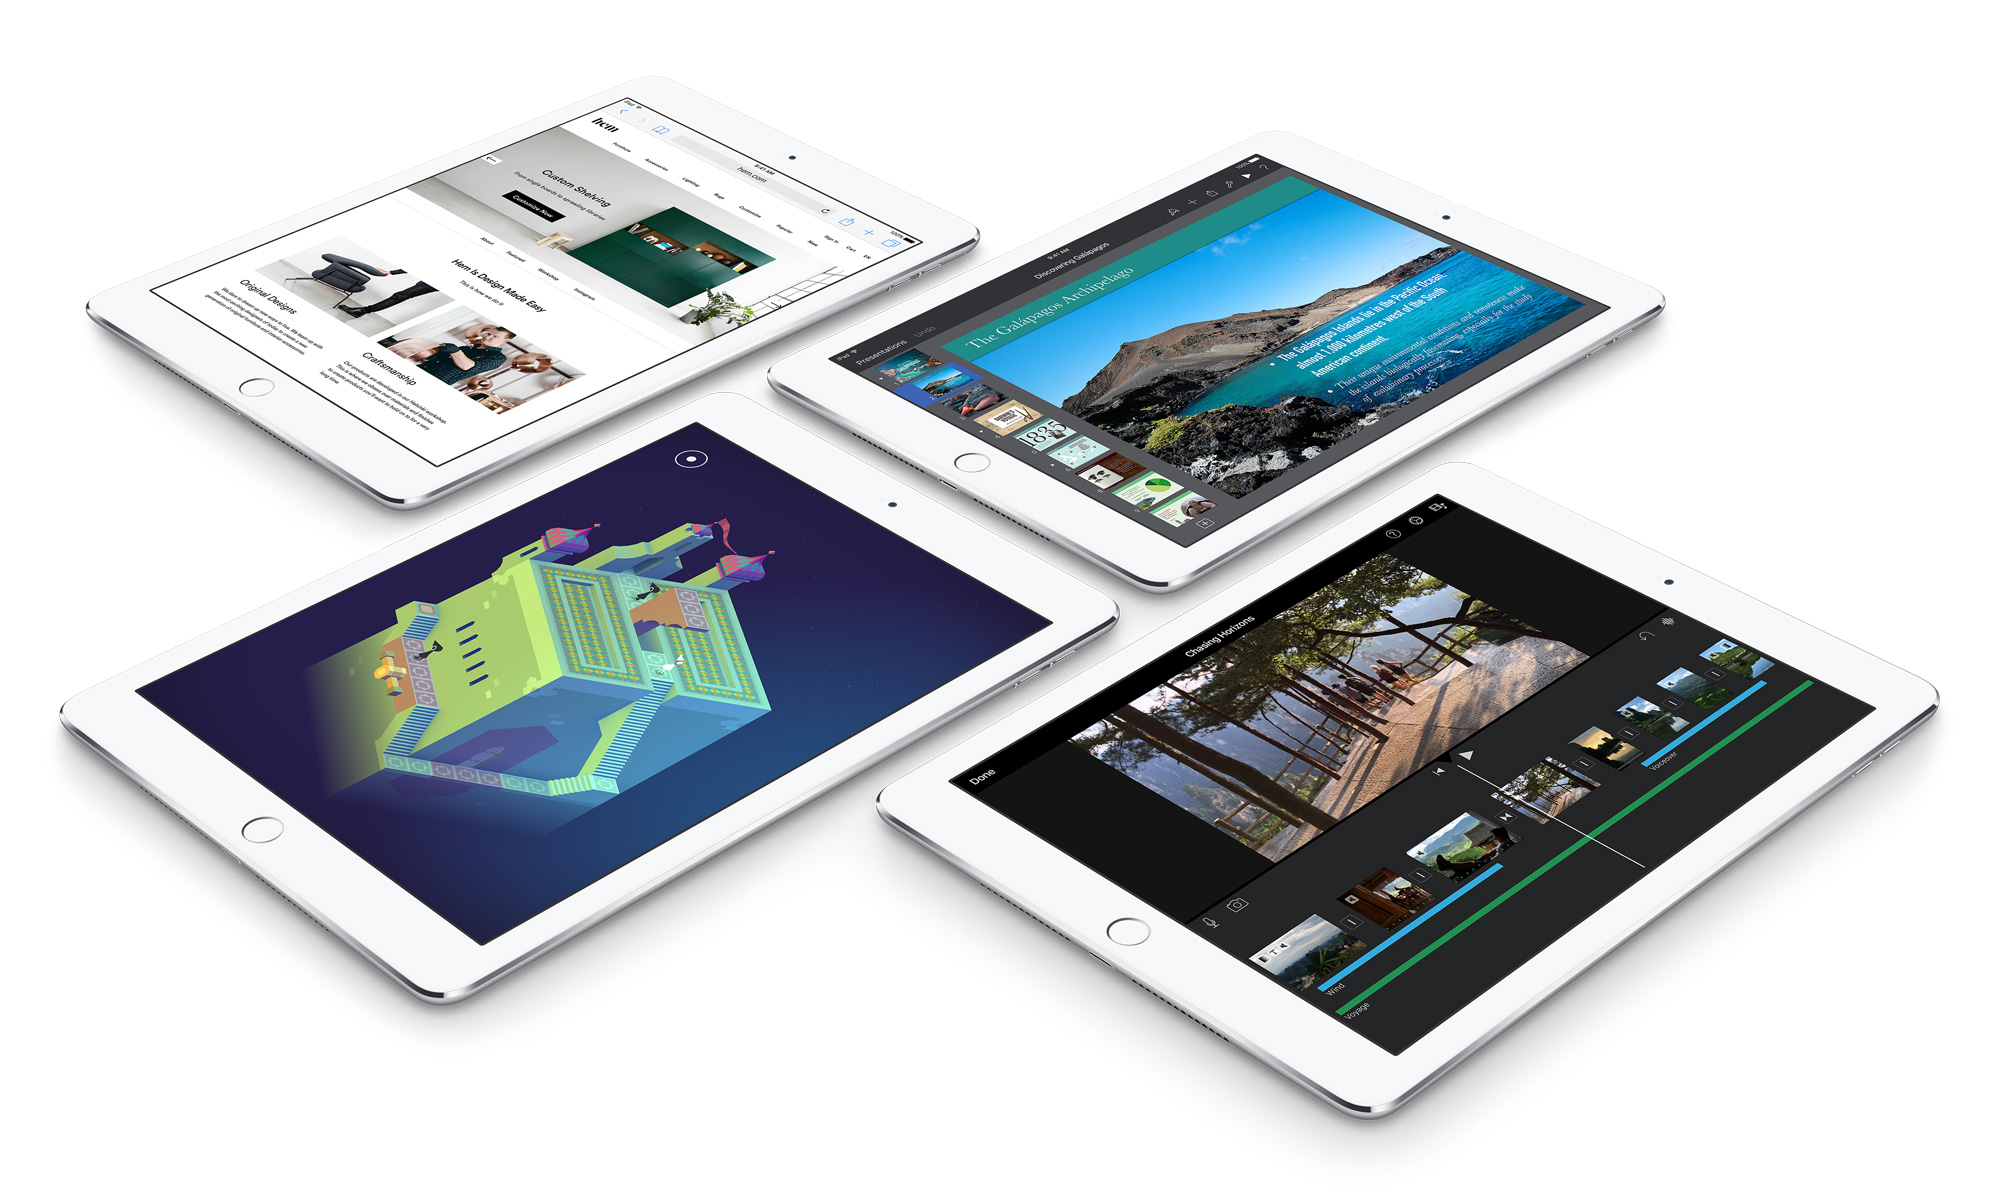 iPad Air 2 Price Cut